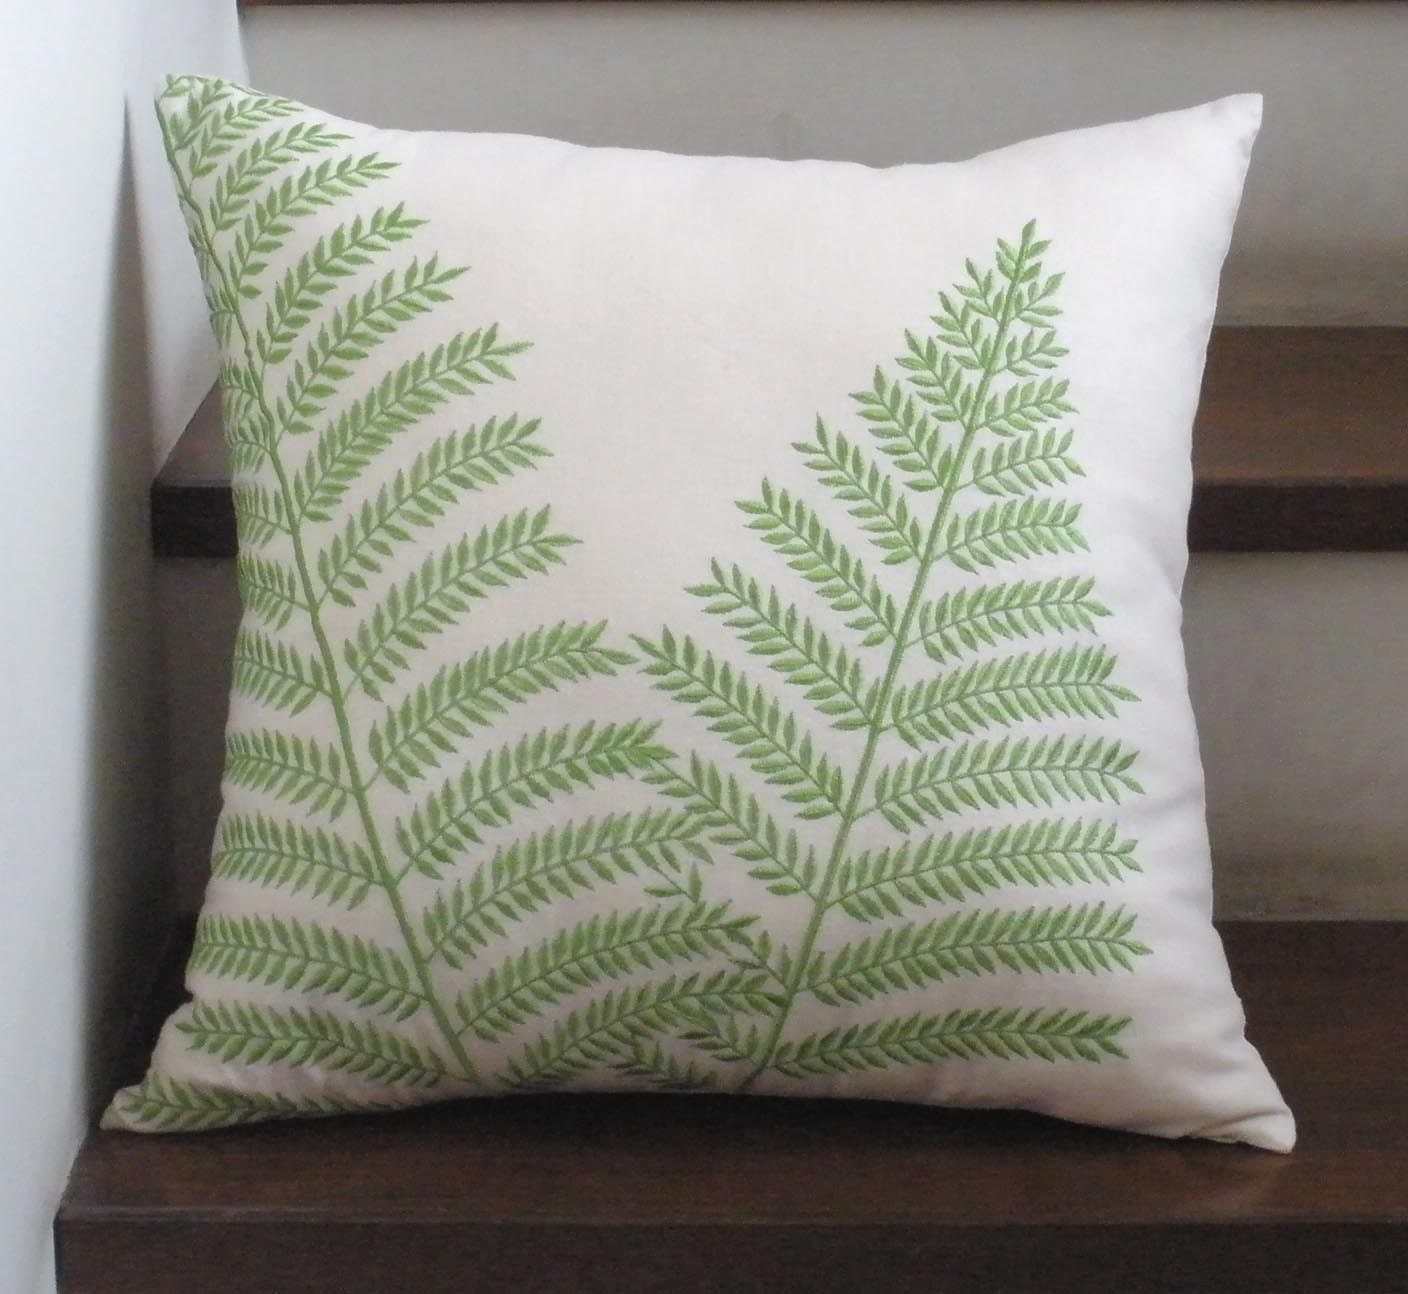 Beige and Green Fern Embroidery  Pillow Cover